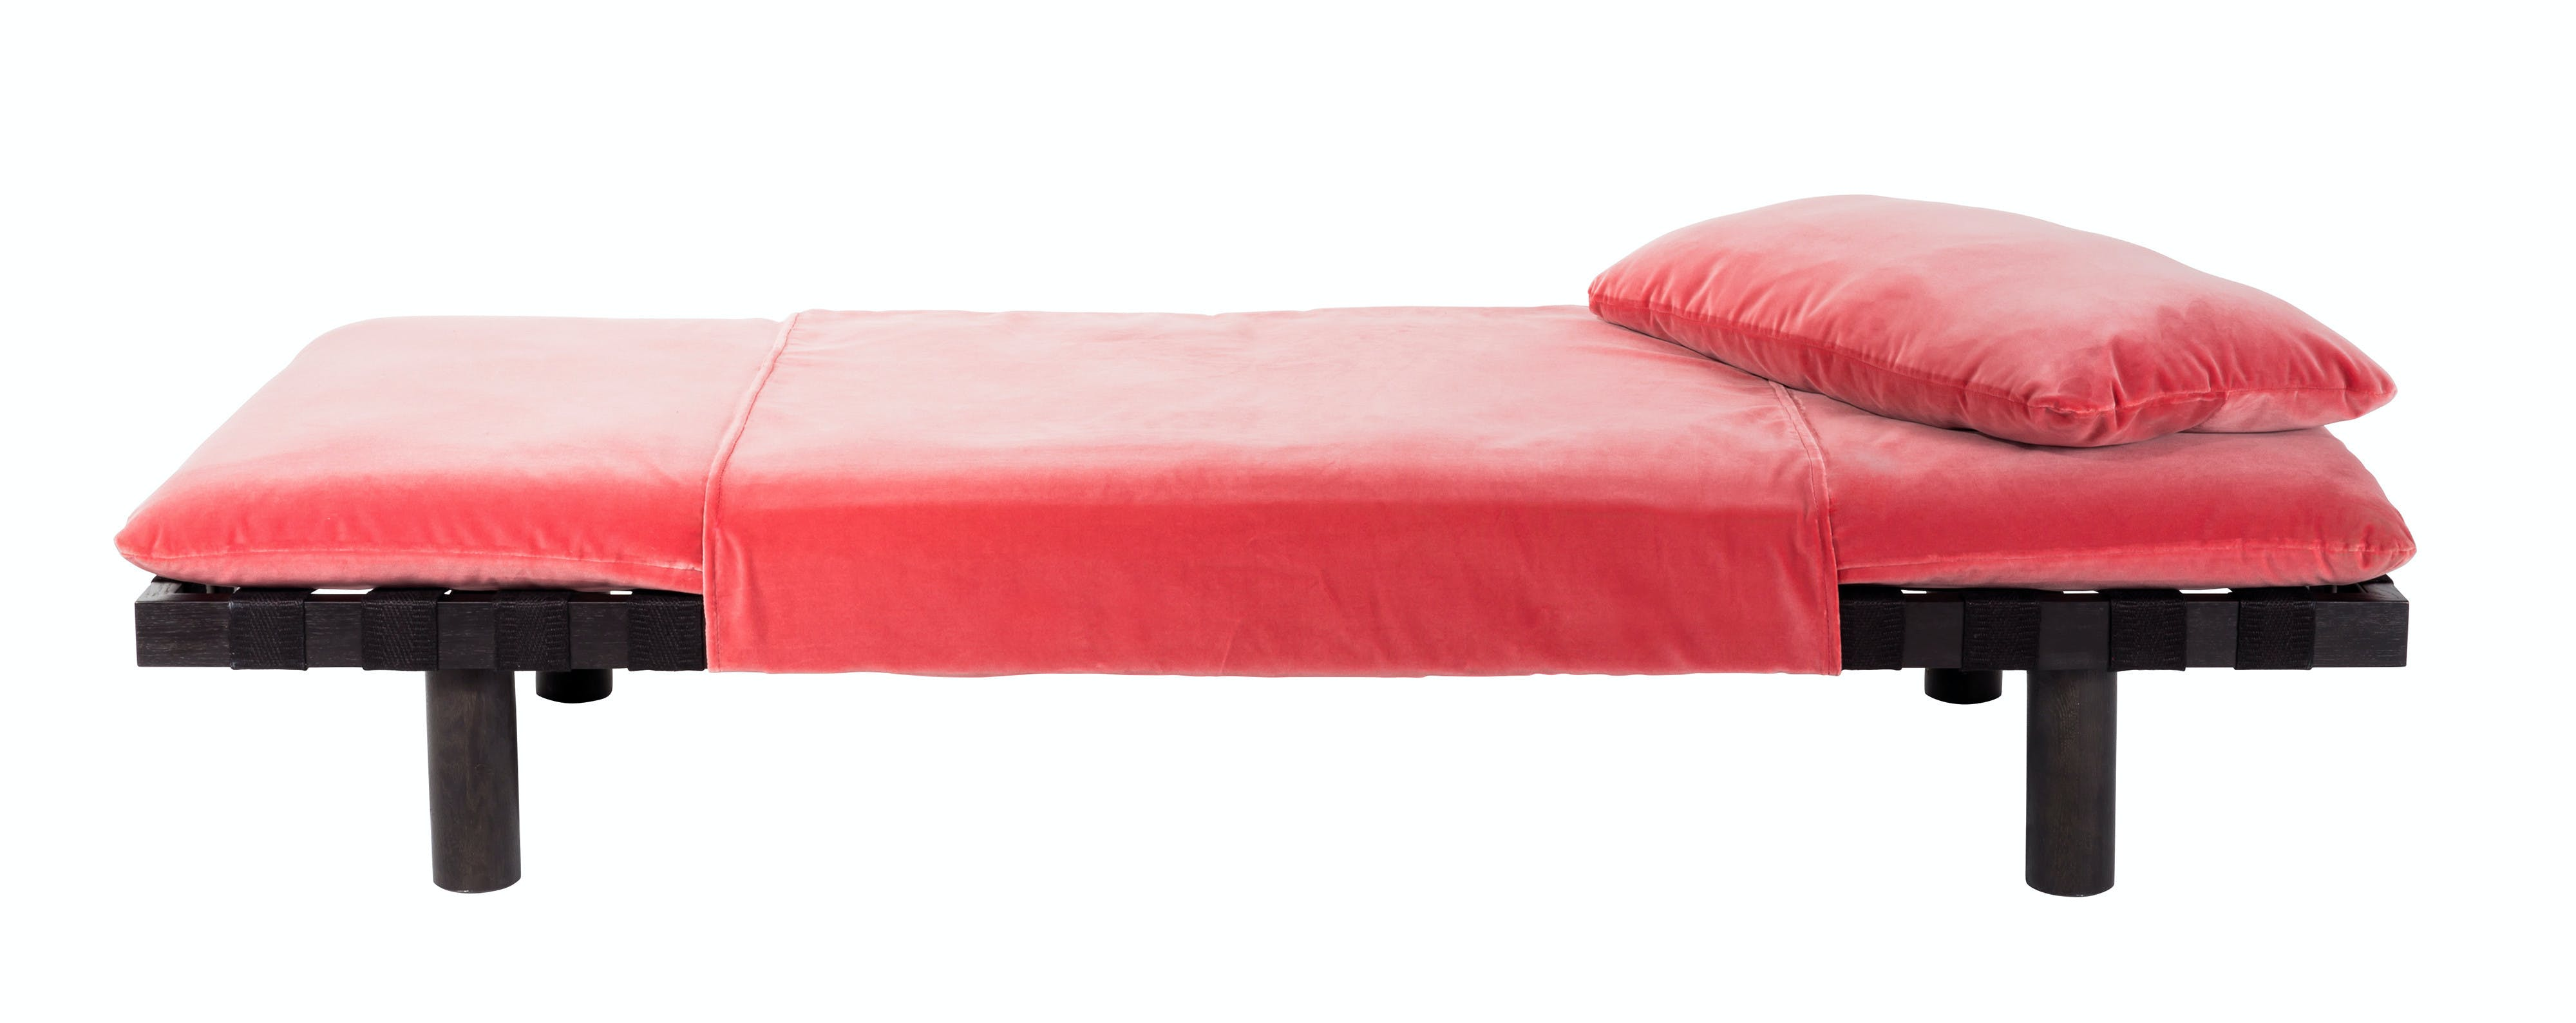 Pulpo-pallet-daybed-red-haute-living